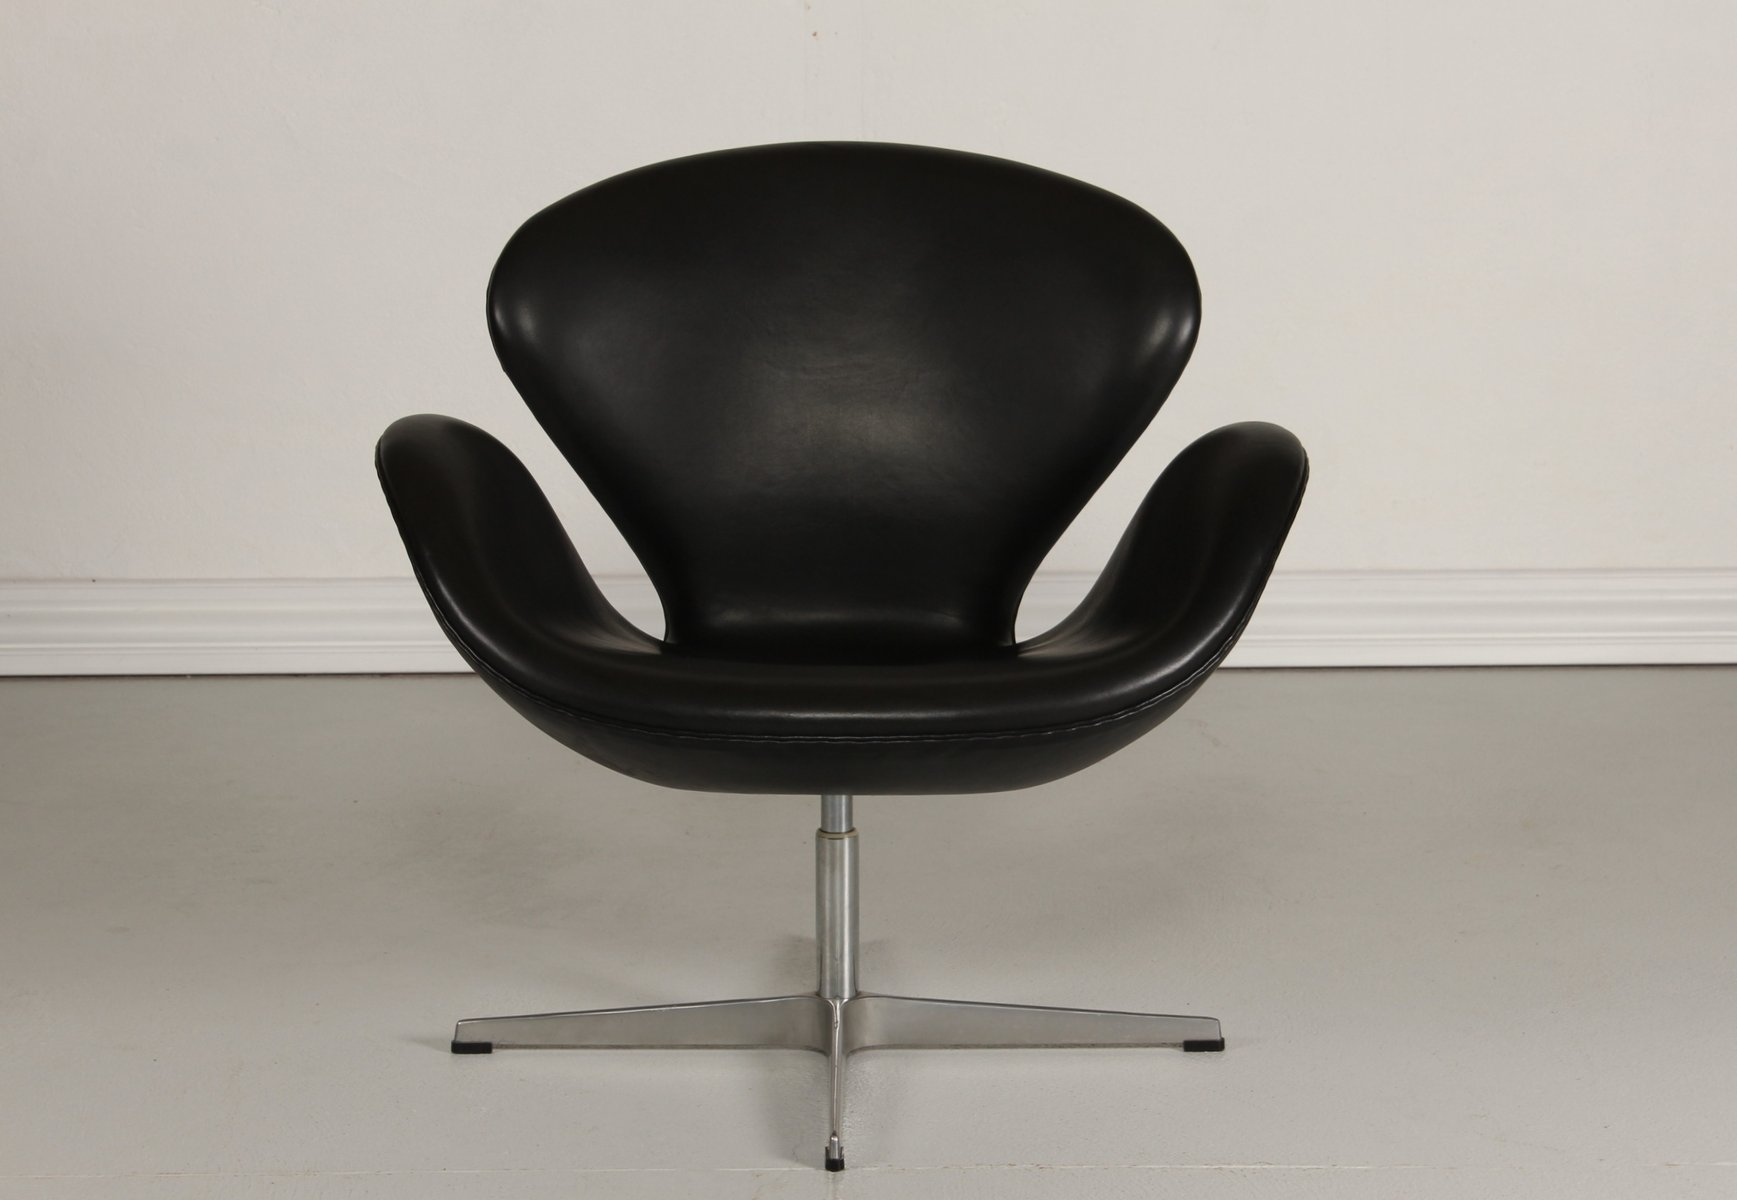 Black swan chair by arne jacobsen for fritz hansen 1981